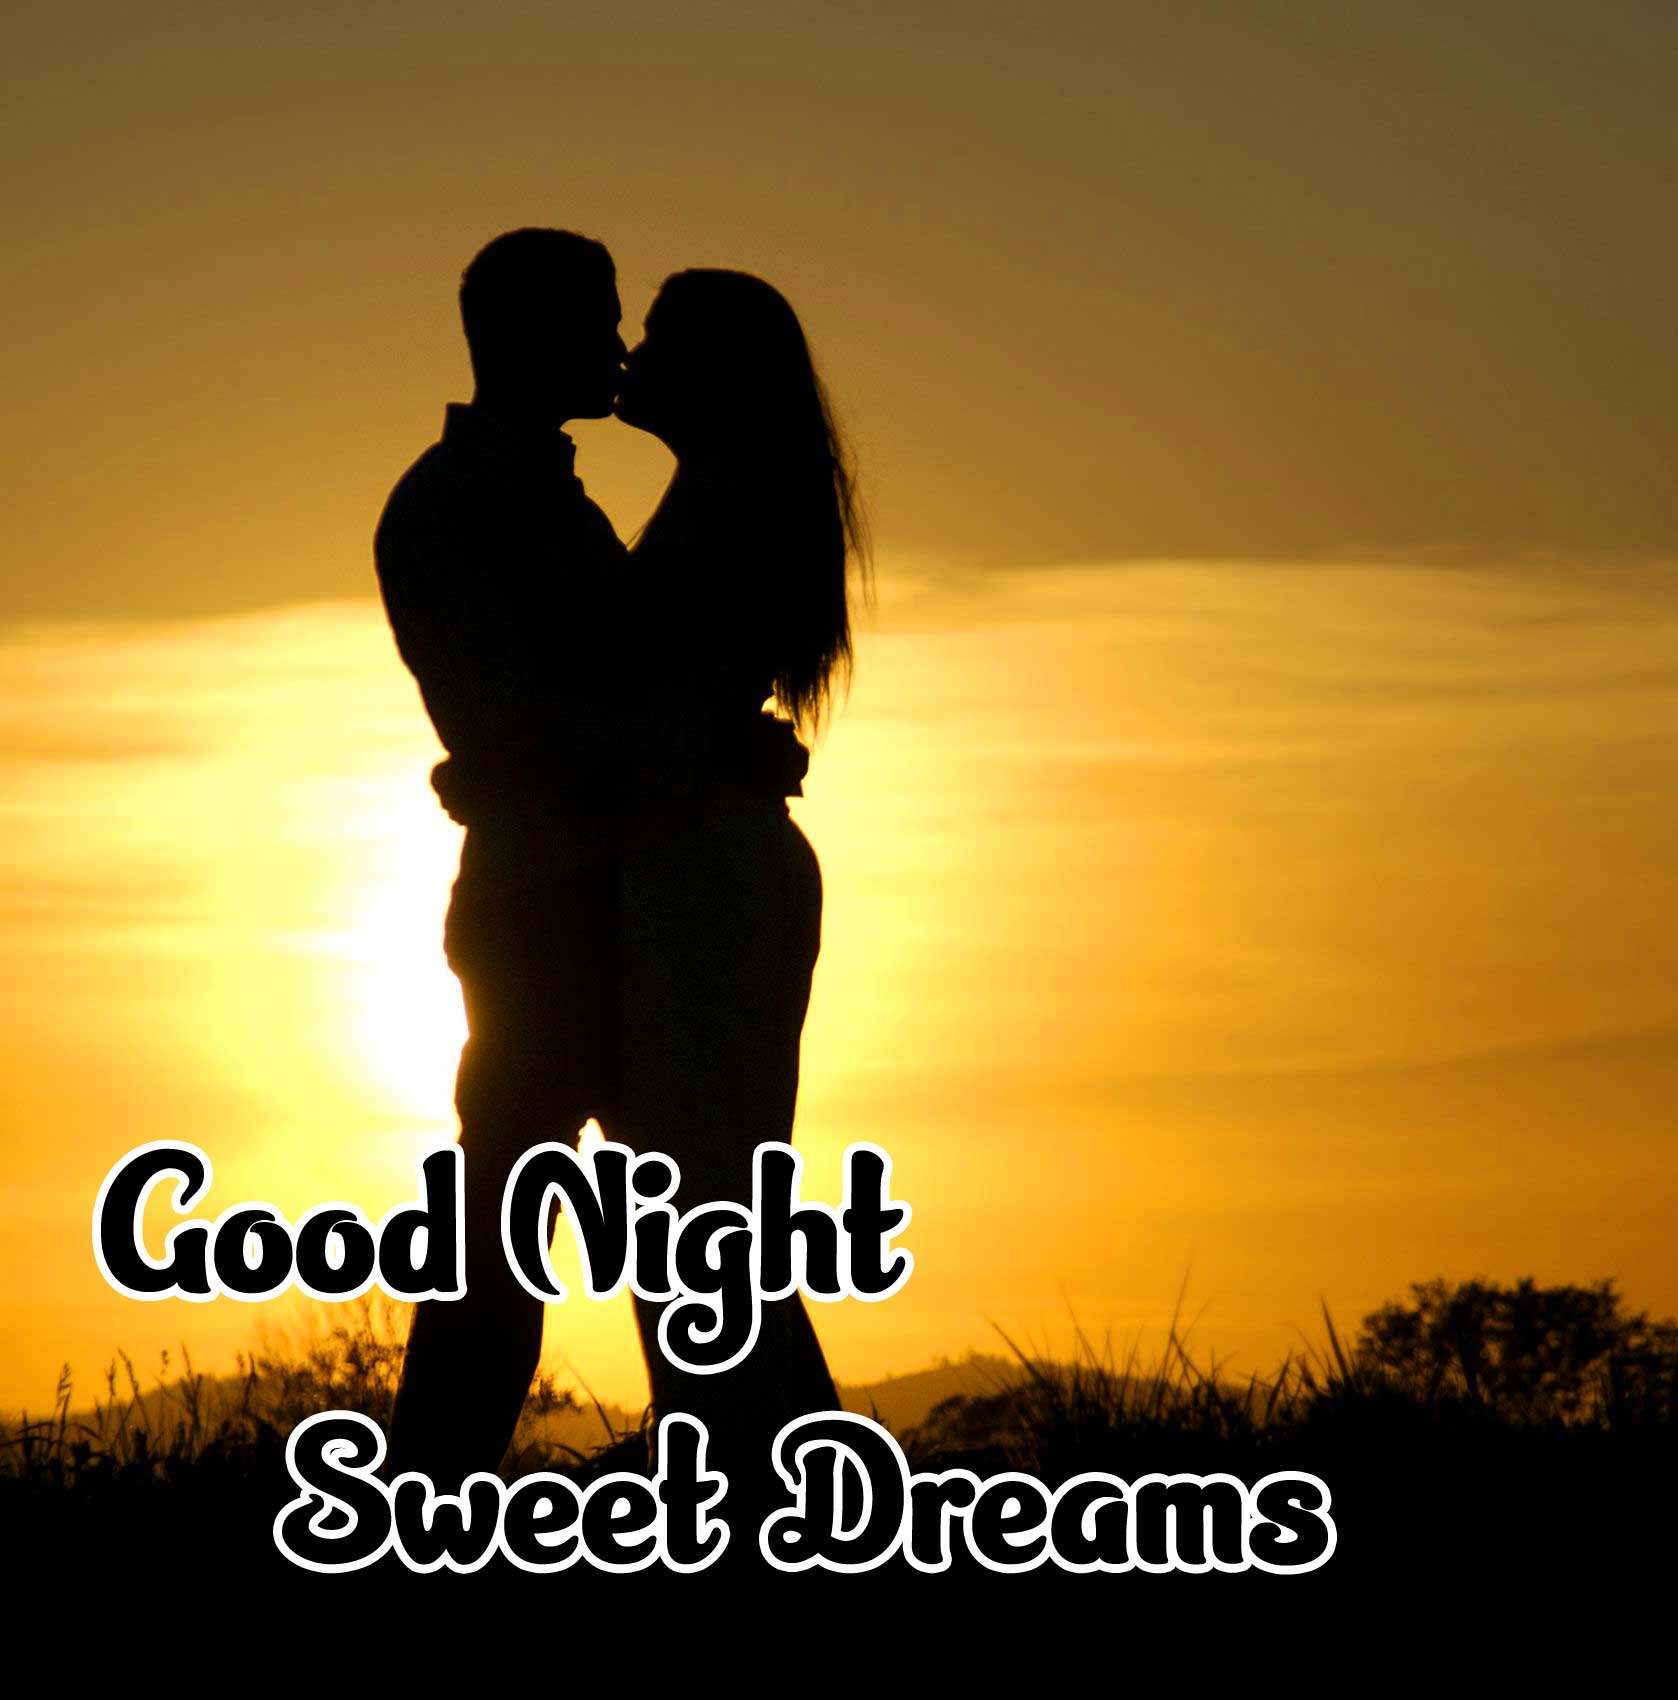 good night sweet dreams images for friends 38